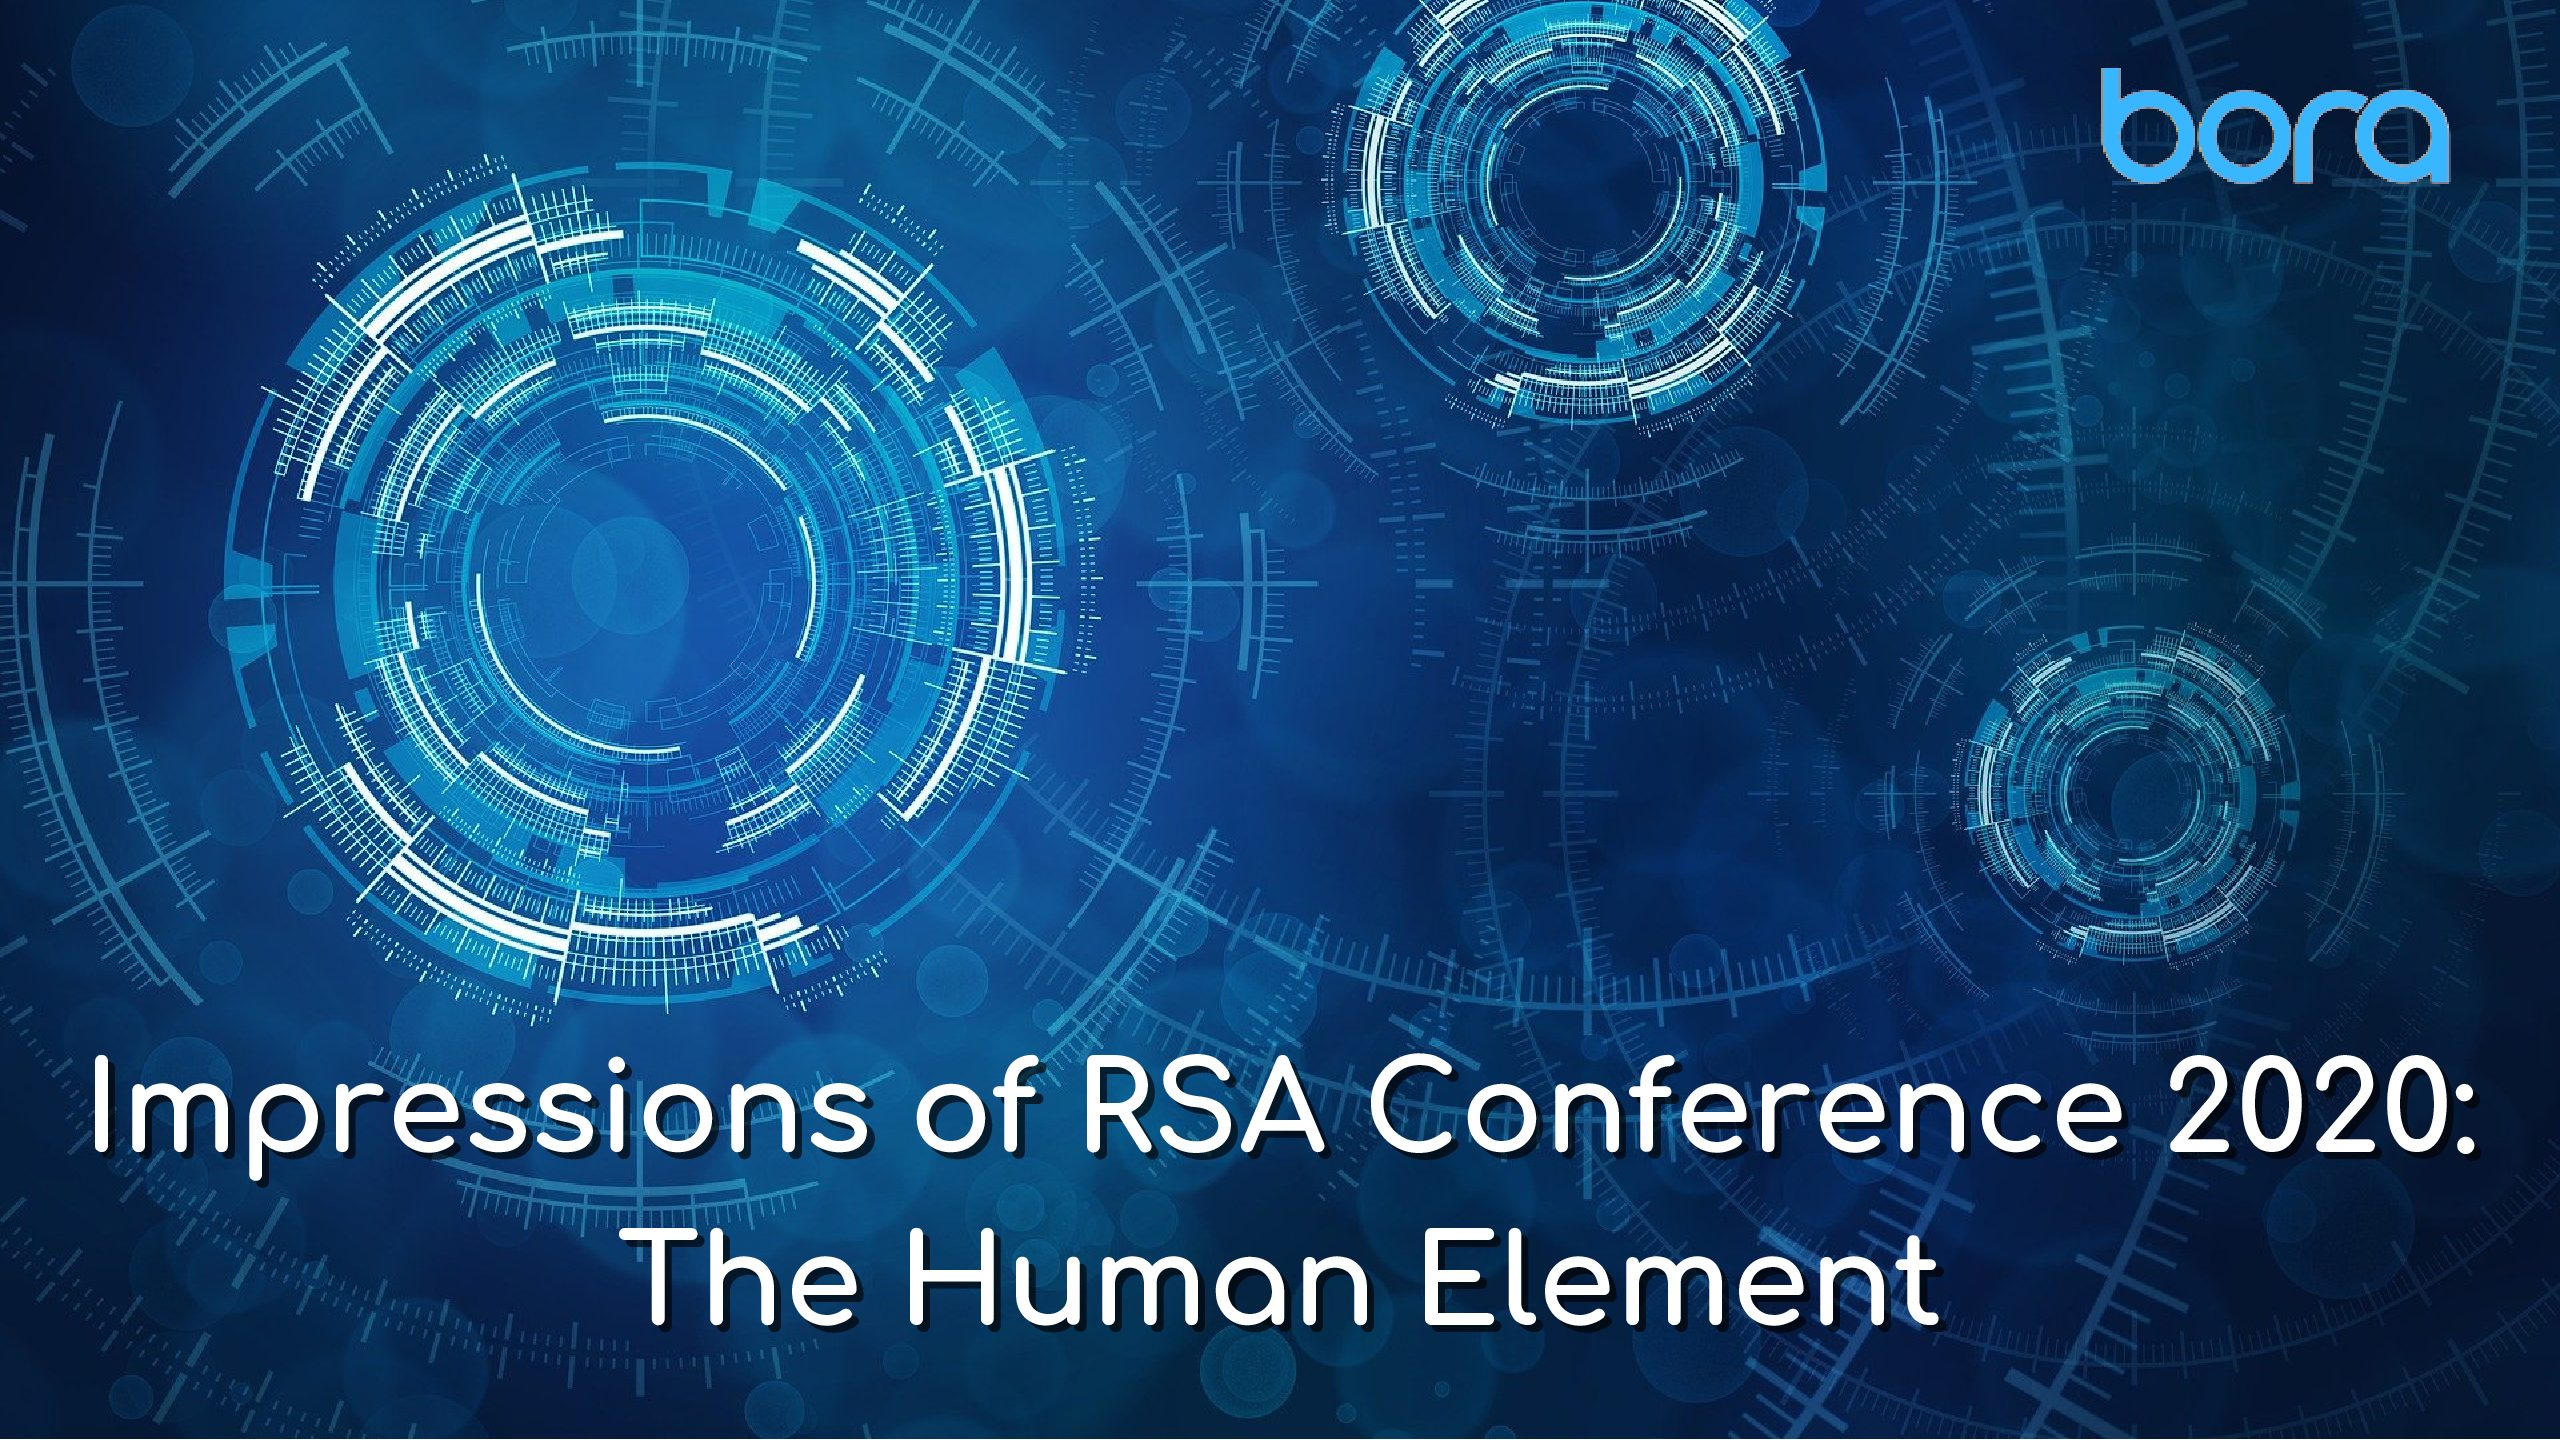 Impressions of RSA Conference 2020: The Human Element